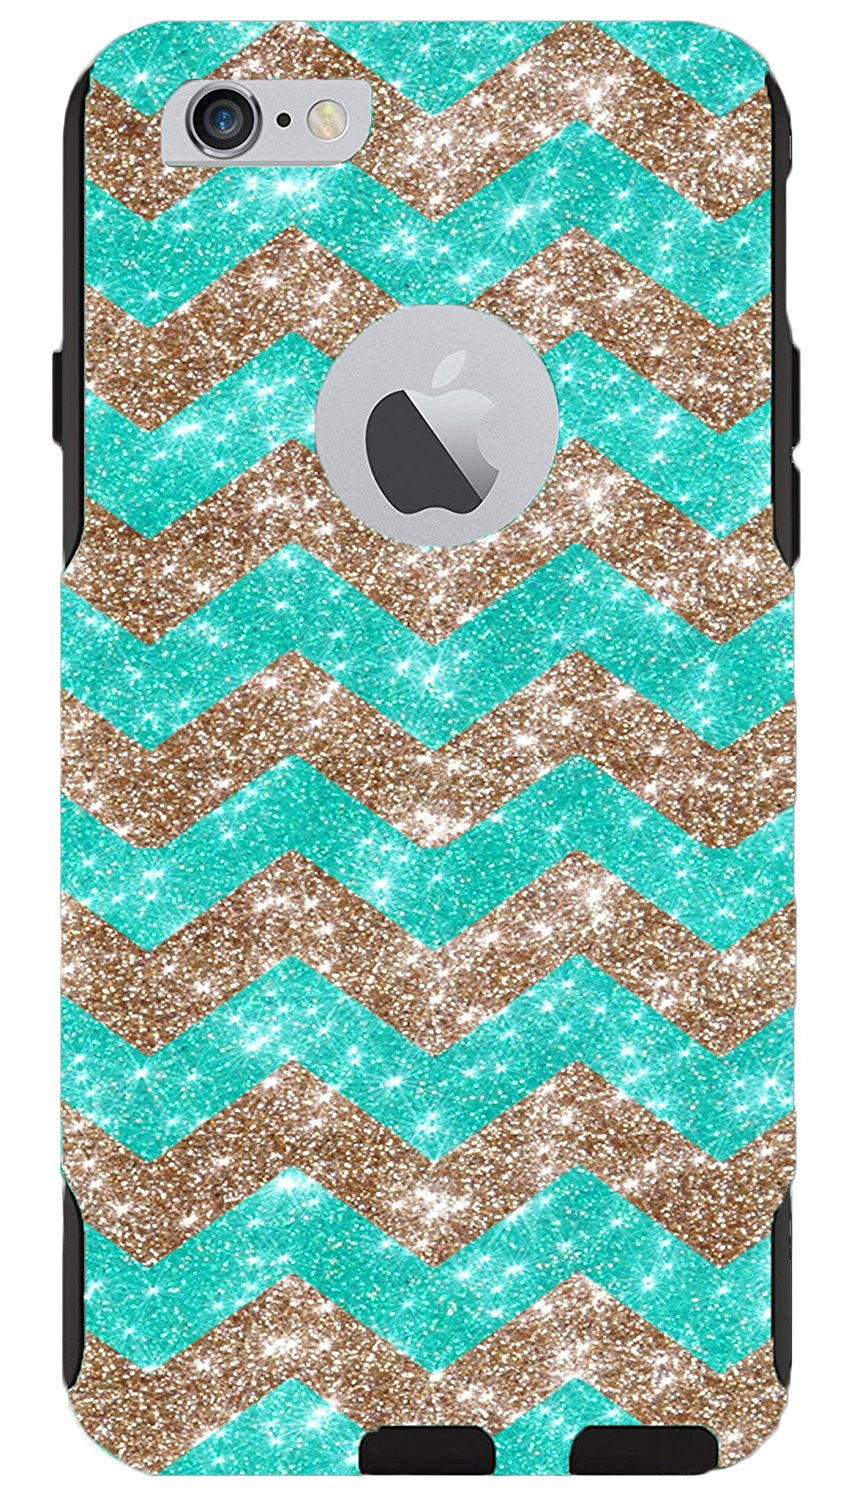 hot sale online 9447e a6db8 OtterBox iPhone 6 Plus Case - OtterBox Commuter Series Custom Glitter Case  for iPhone 6 Plus, Retail Packaging - Gold Small Chevron Wintermint/Black  ...